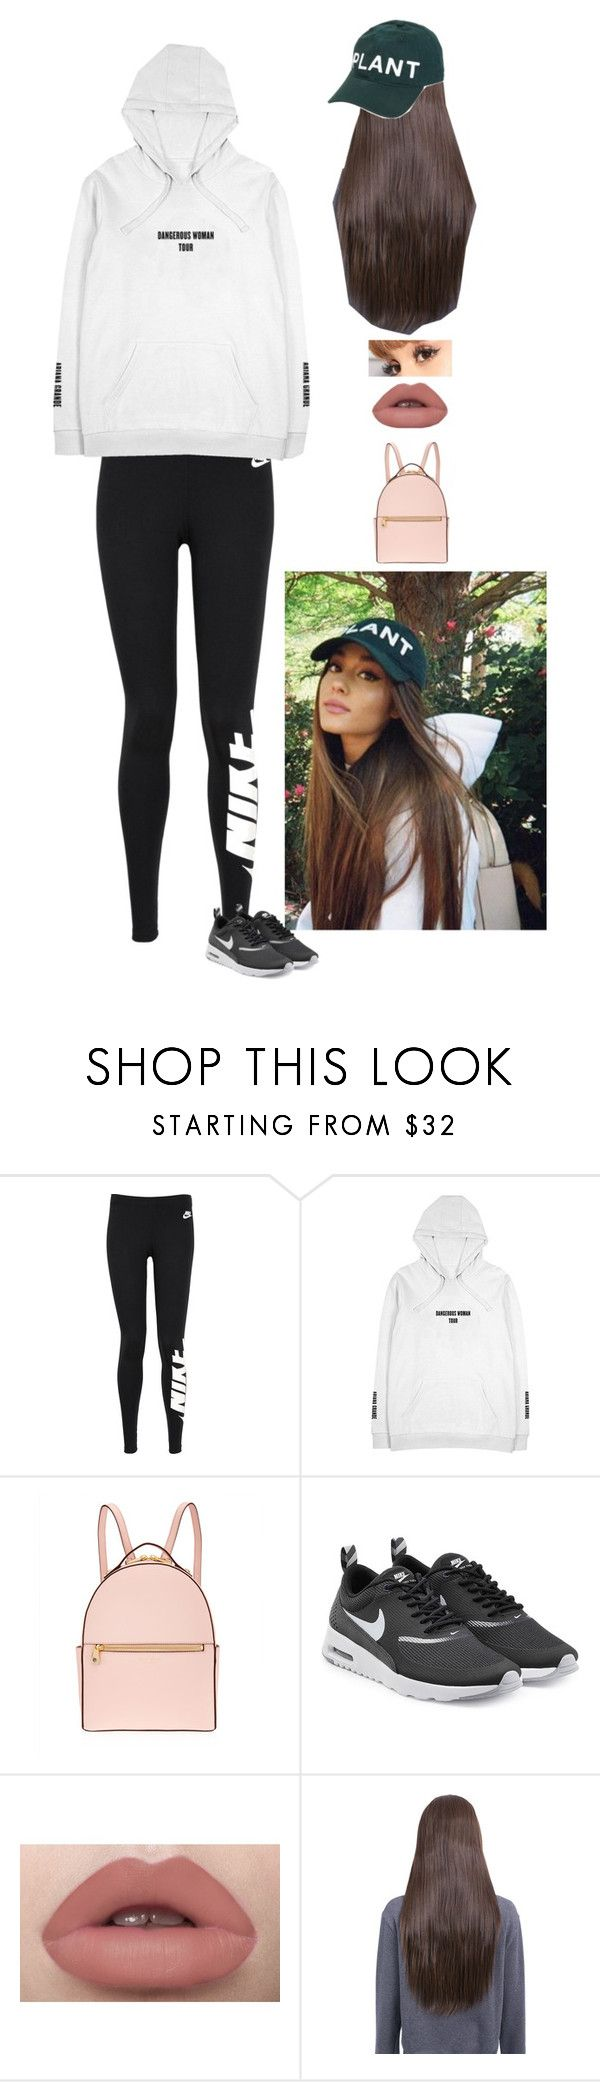 """""""Ariana Grande Inspired Outfit"""" by moonlightbae264 ❤ liked on Polyvore featuring NIKE, Henri Bendel and ArianaGrande"""